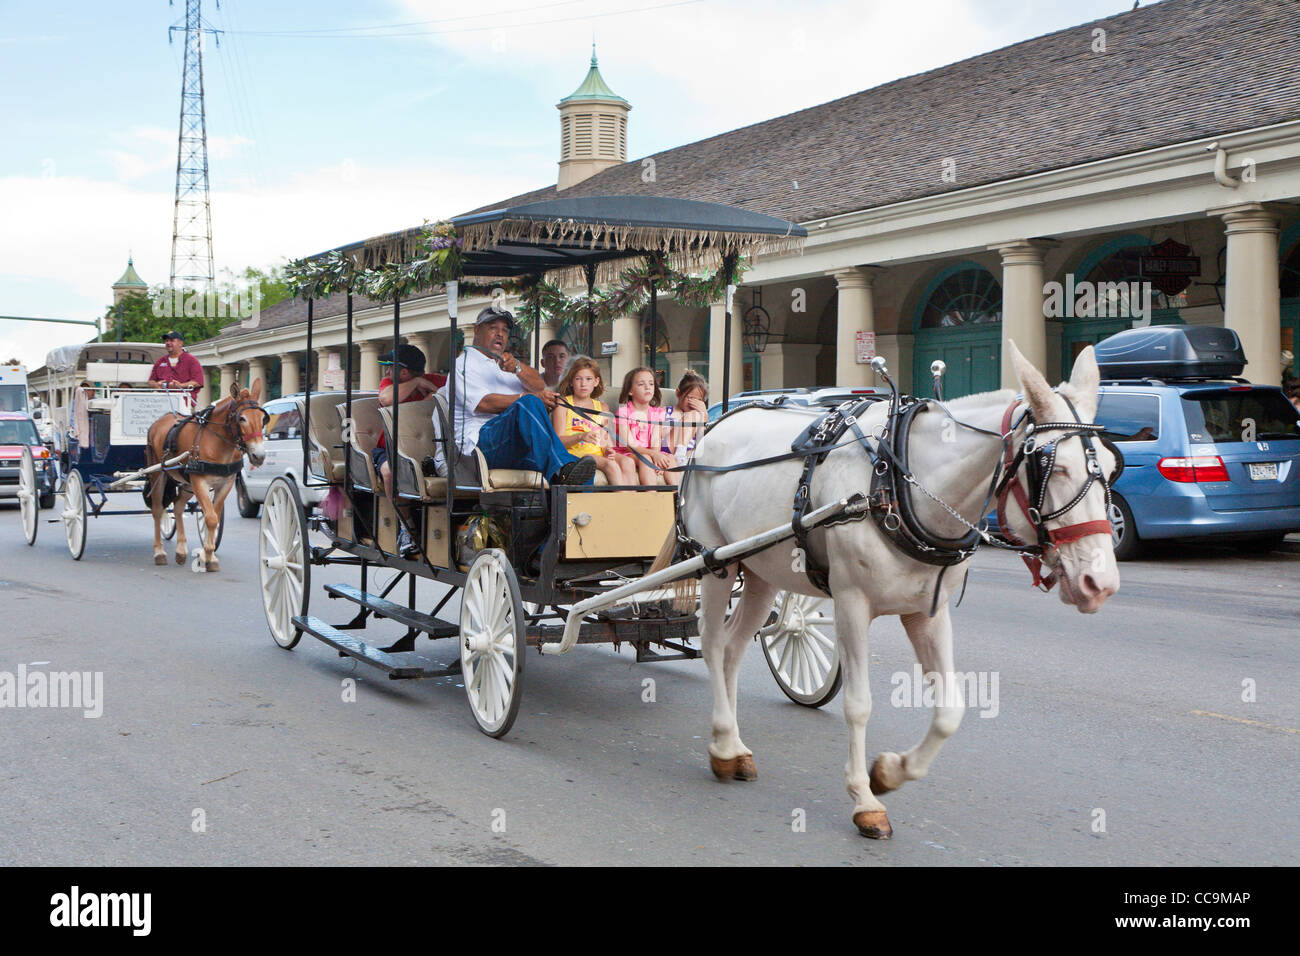 Horse and carriage vendor talking to his passengers on Decatur Street in the French Quarter of New Orleans, LA - Stock Image